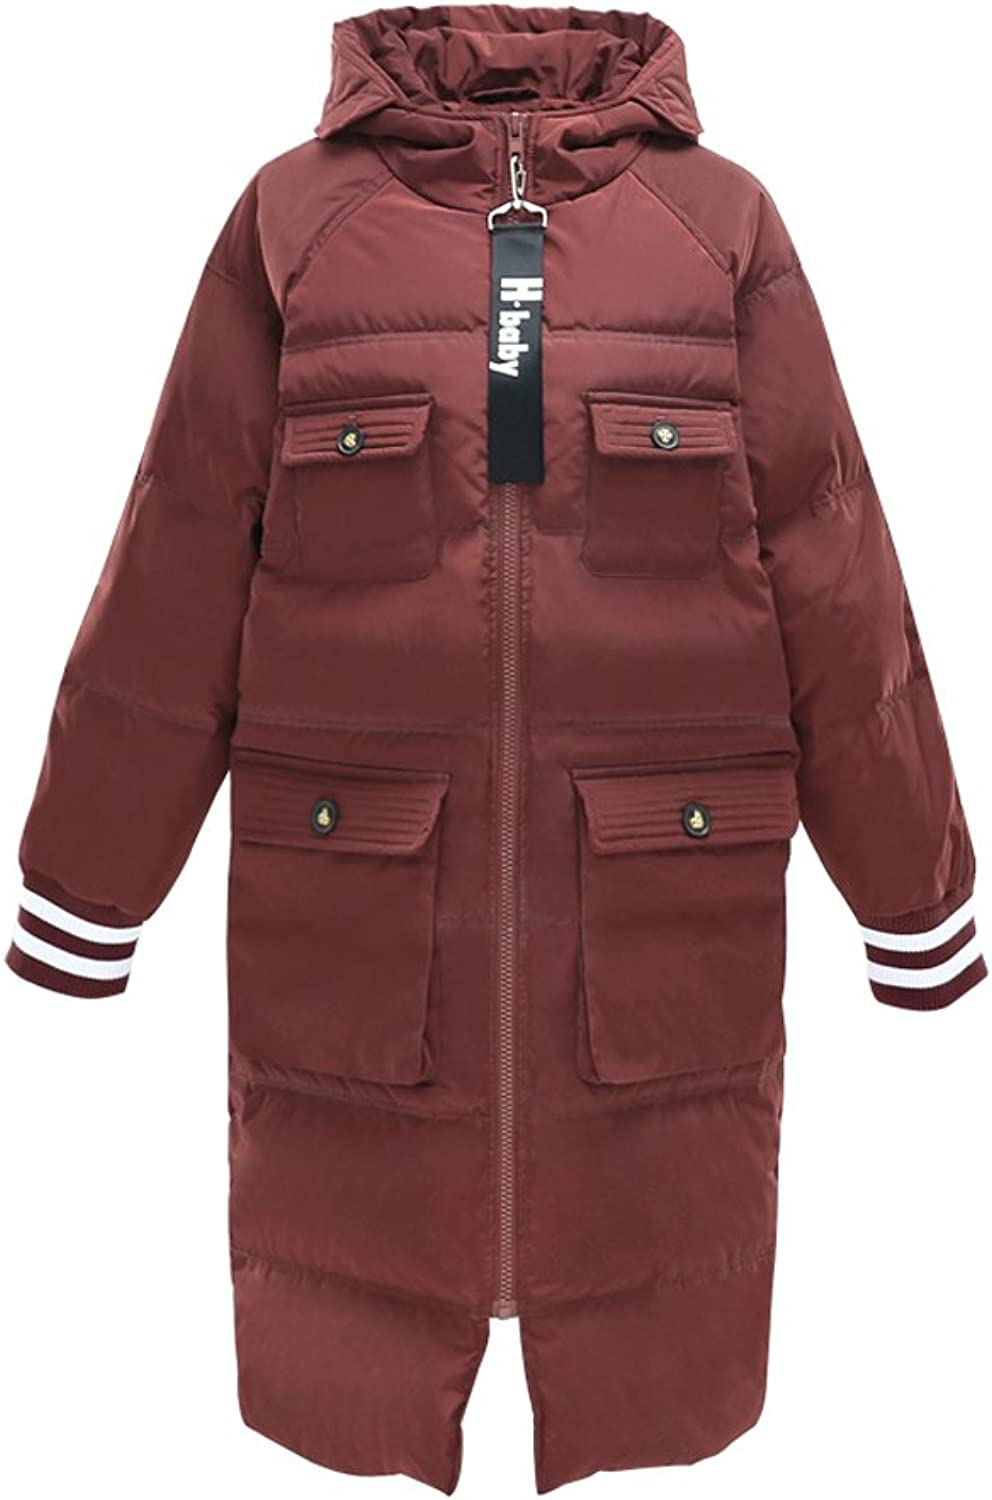 Women Brown Loose Leisure Hooded Thick Coat Winter Warm Windproof Long Sections Zipper Down Coat (color   Brown, Size   S)